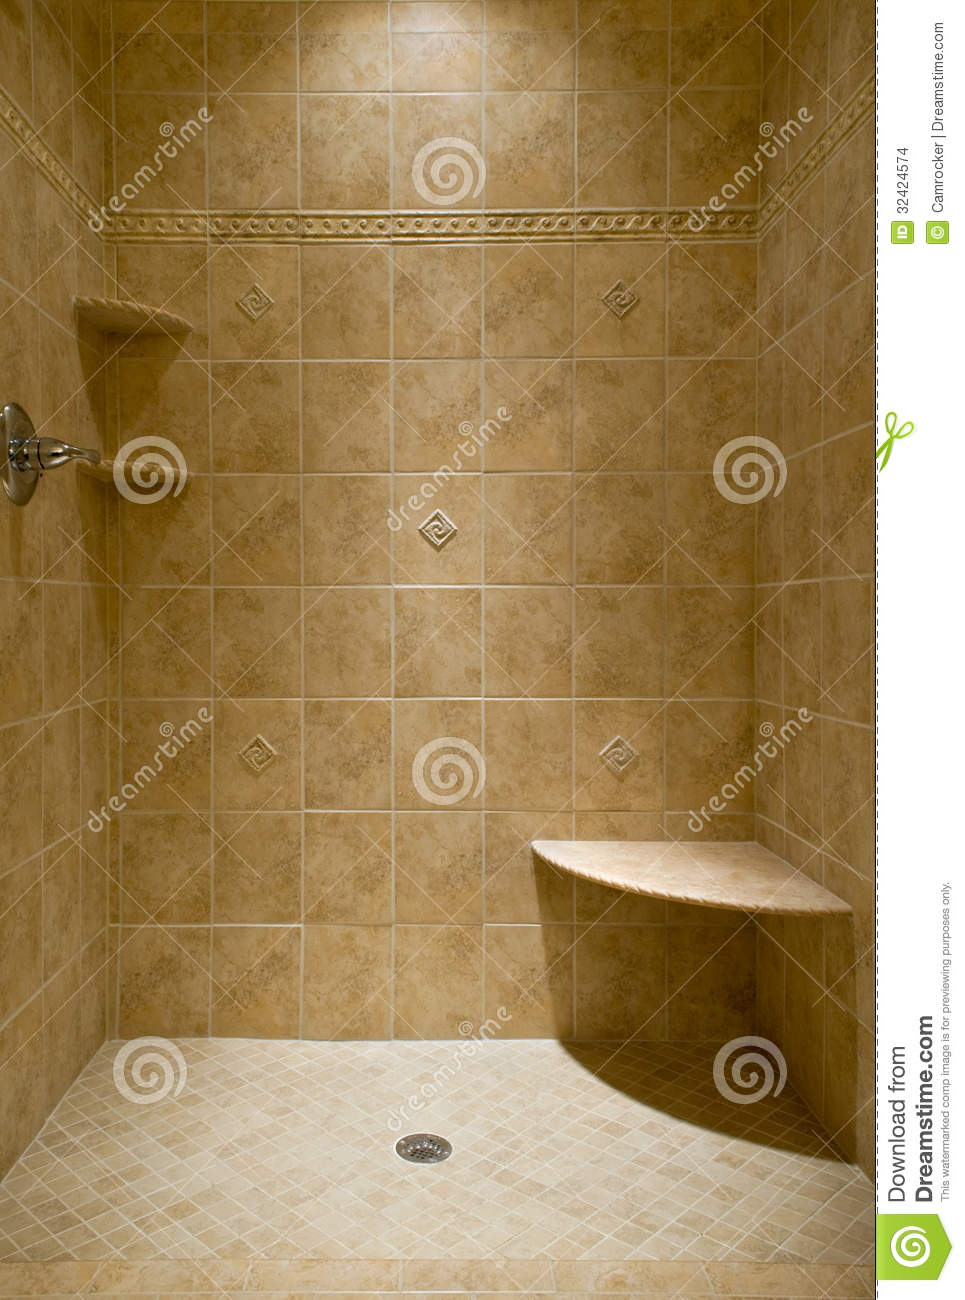 Custom tiled stand up shower stock photo image 32424574 for Bathroom stand up shower designs